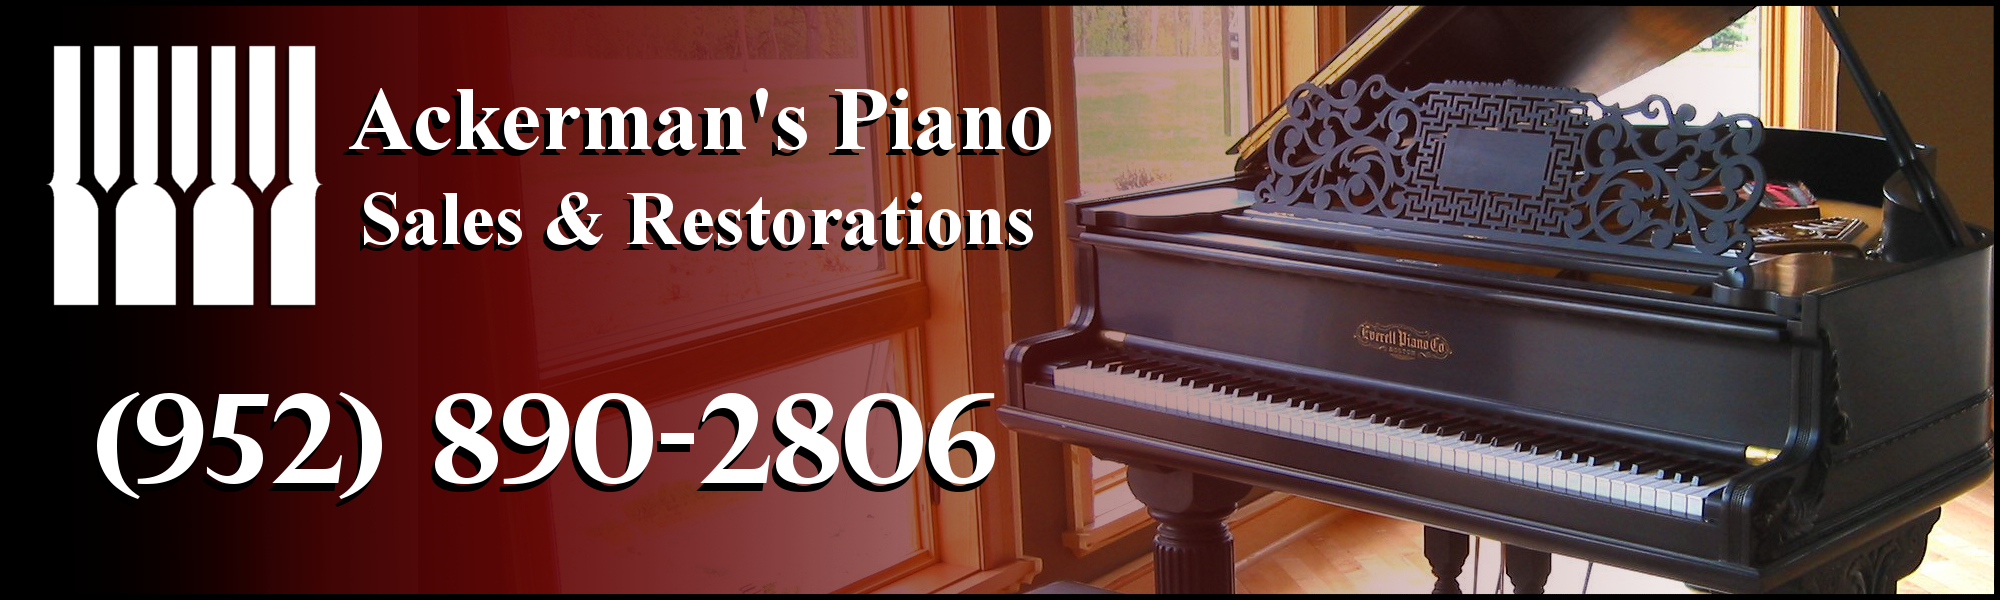 Ackerman's Piano Sales & Restorations New Pianos for Sale page.